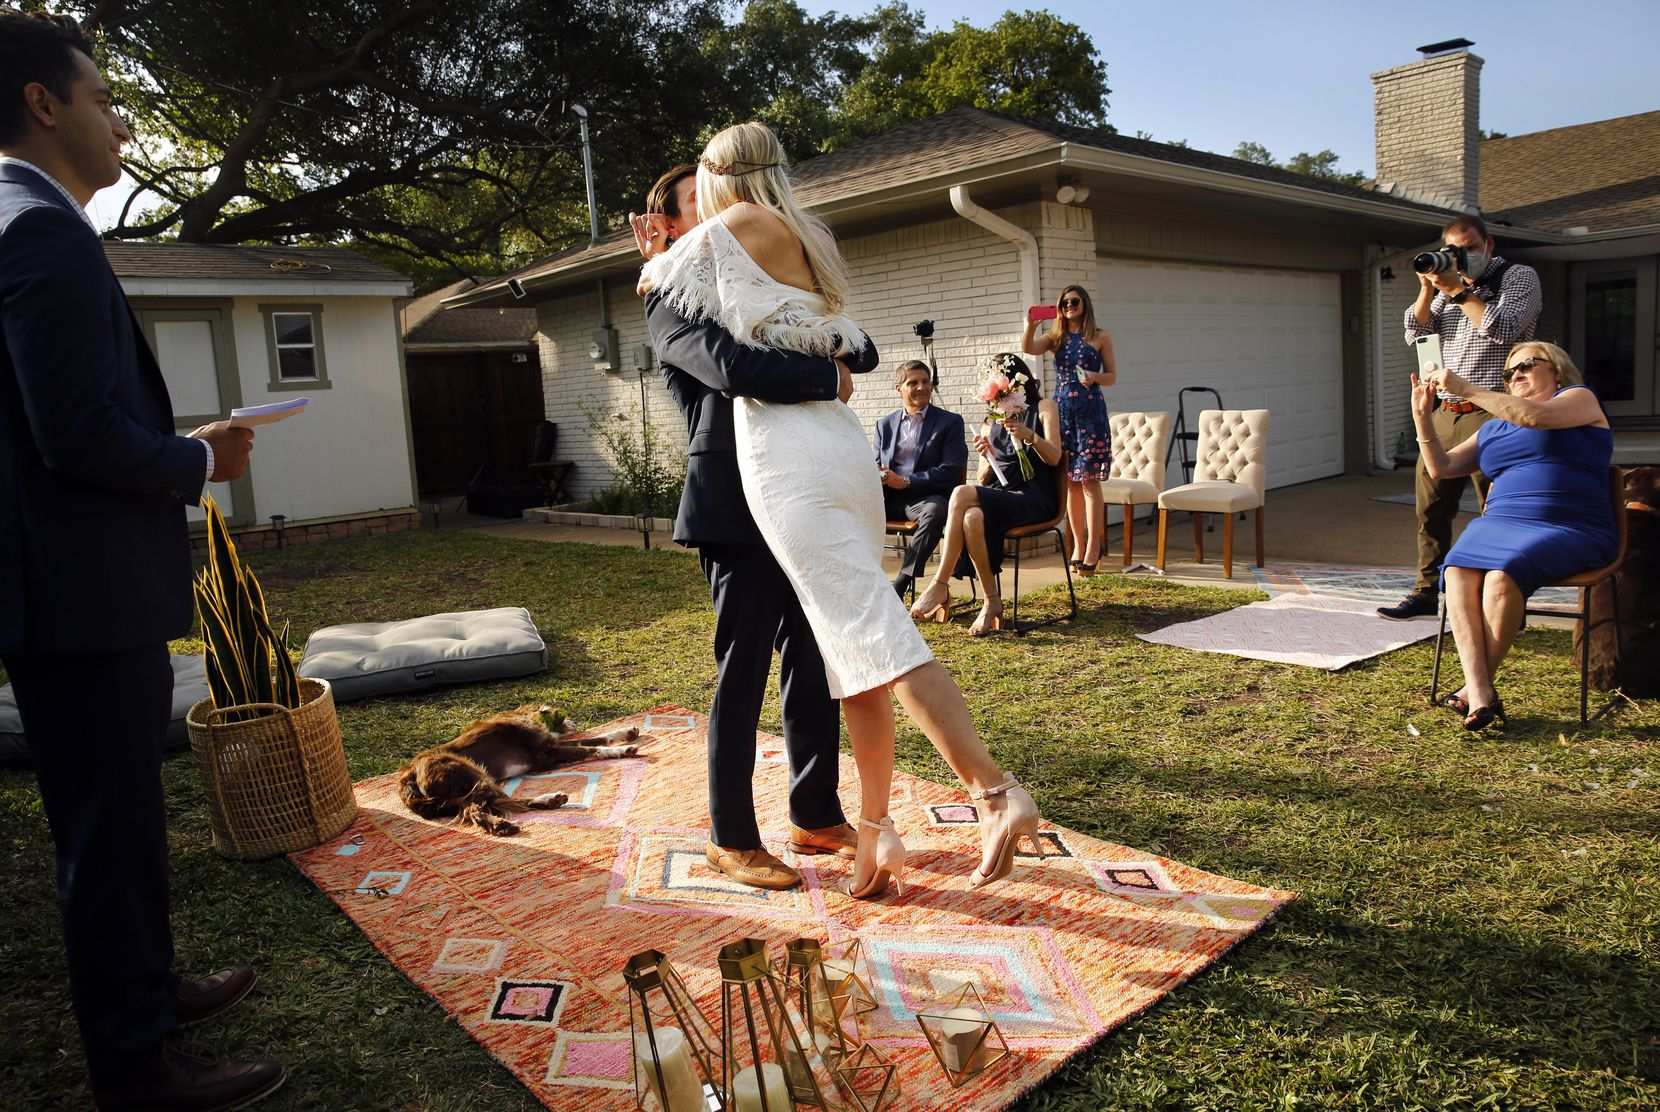 Andrew Houshian and Dana Striph sealed it with a kiss after Kayvon Rashidi married them at their northeast Dallas home in April. Tucker, their springer spaniel, was the ring bearer